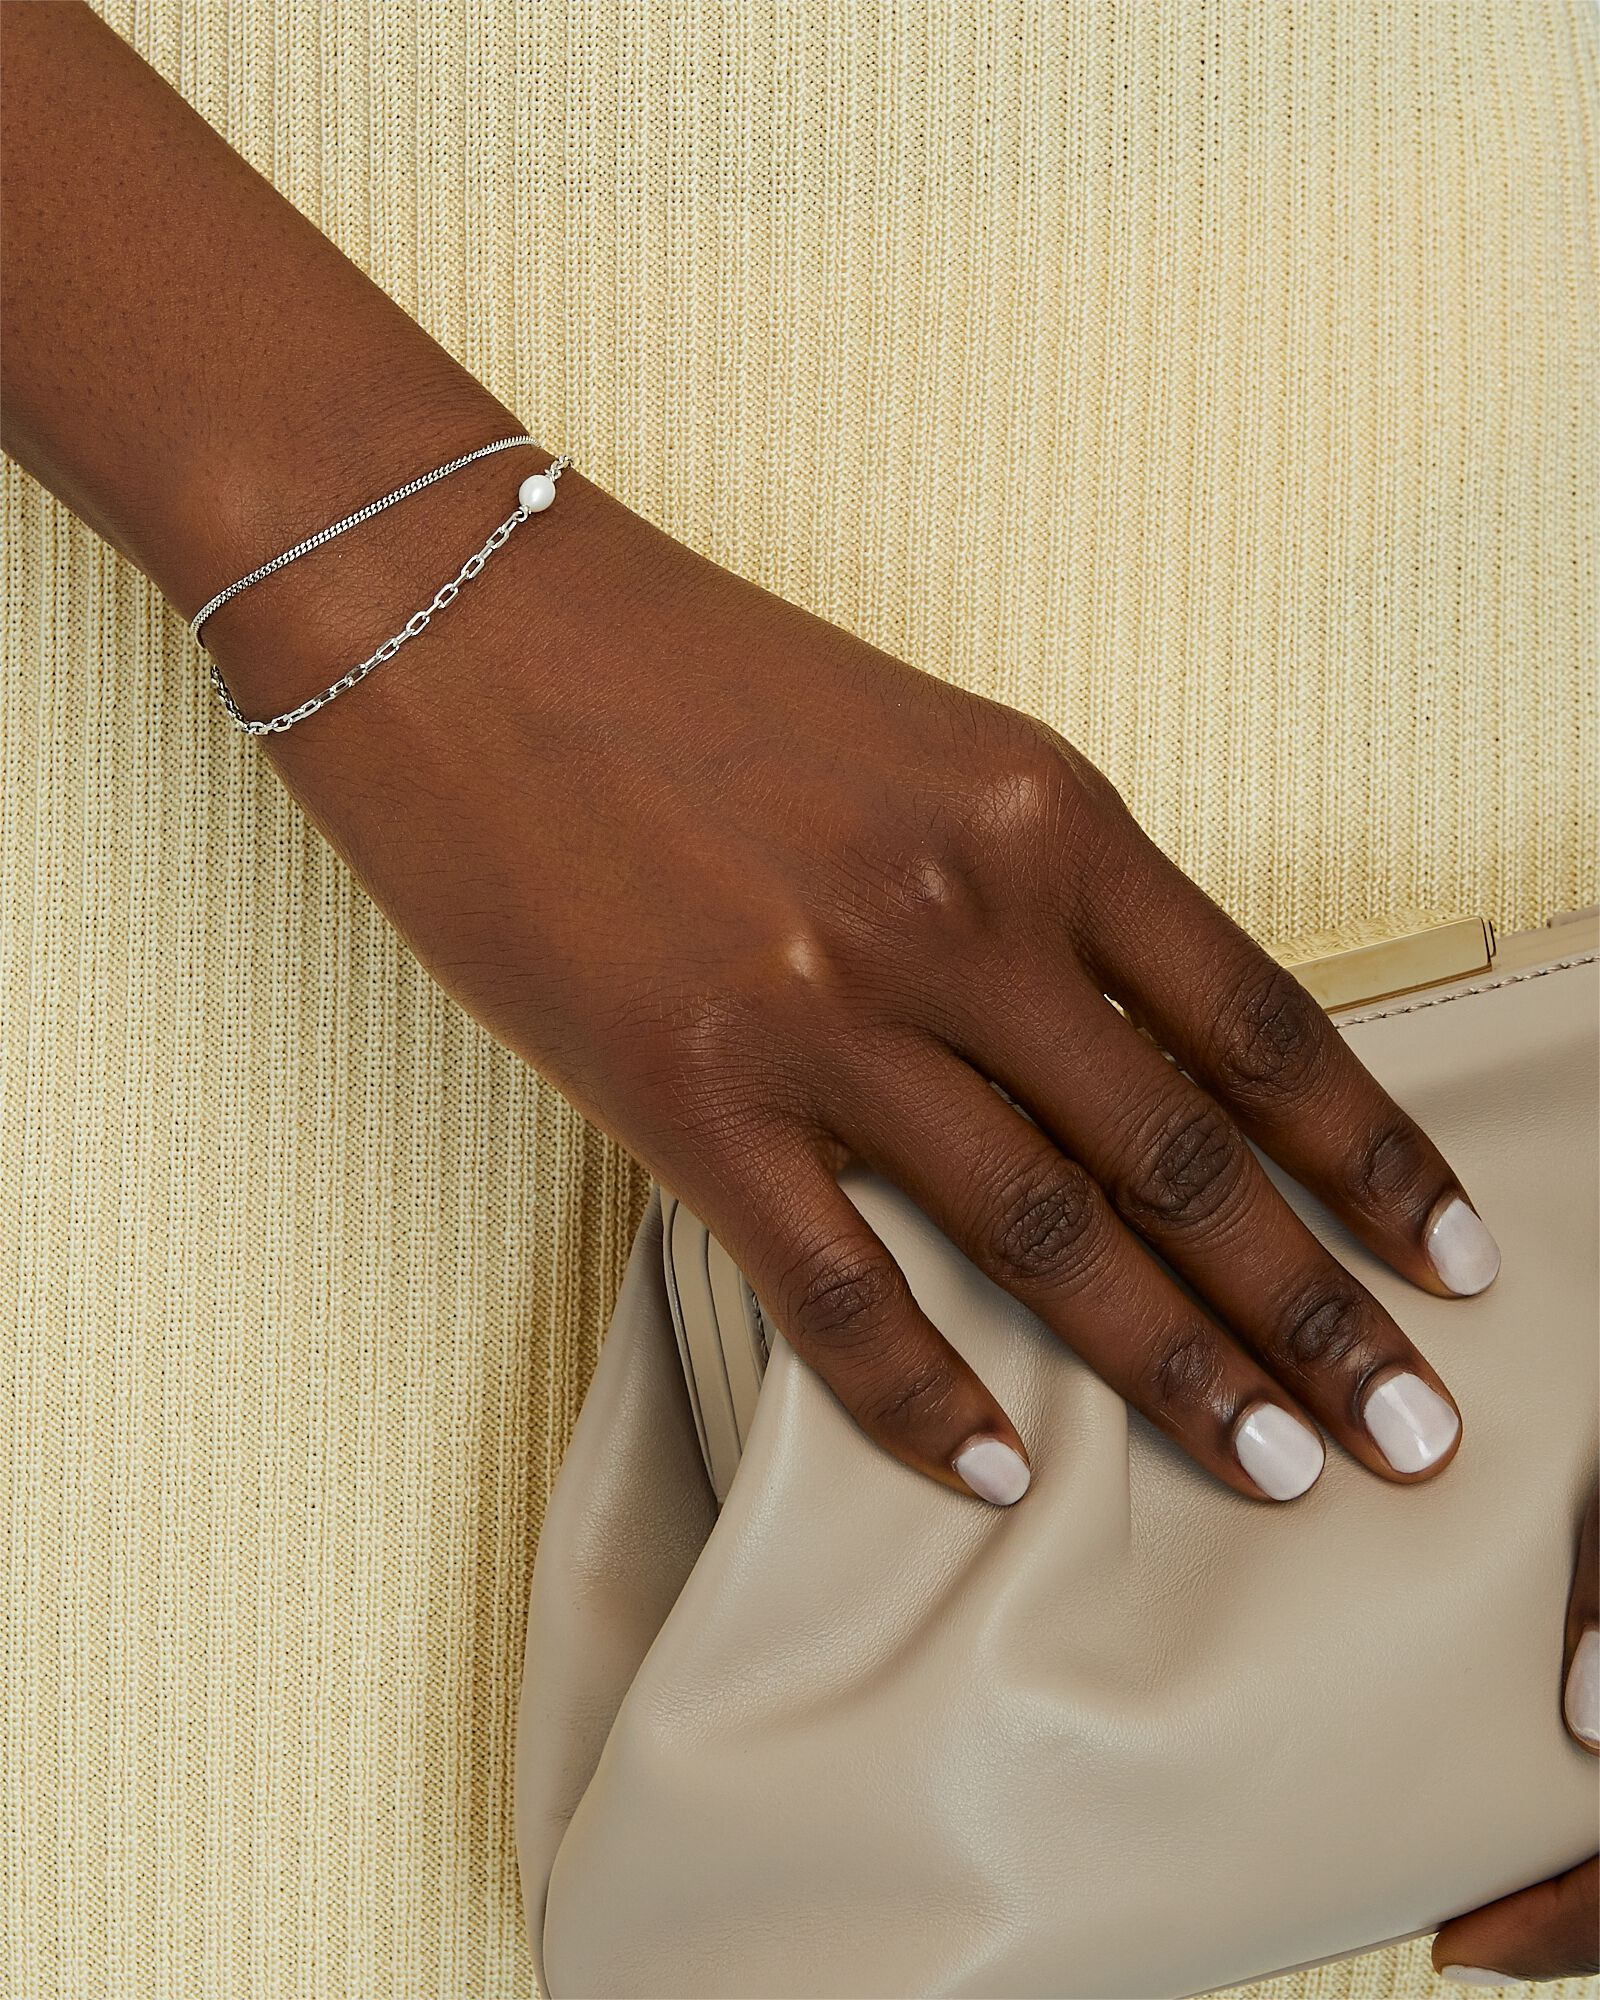 Cantare Pearl Chain-Link Bracelet, SILVER, hi-res